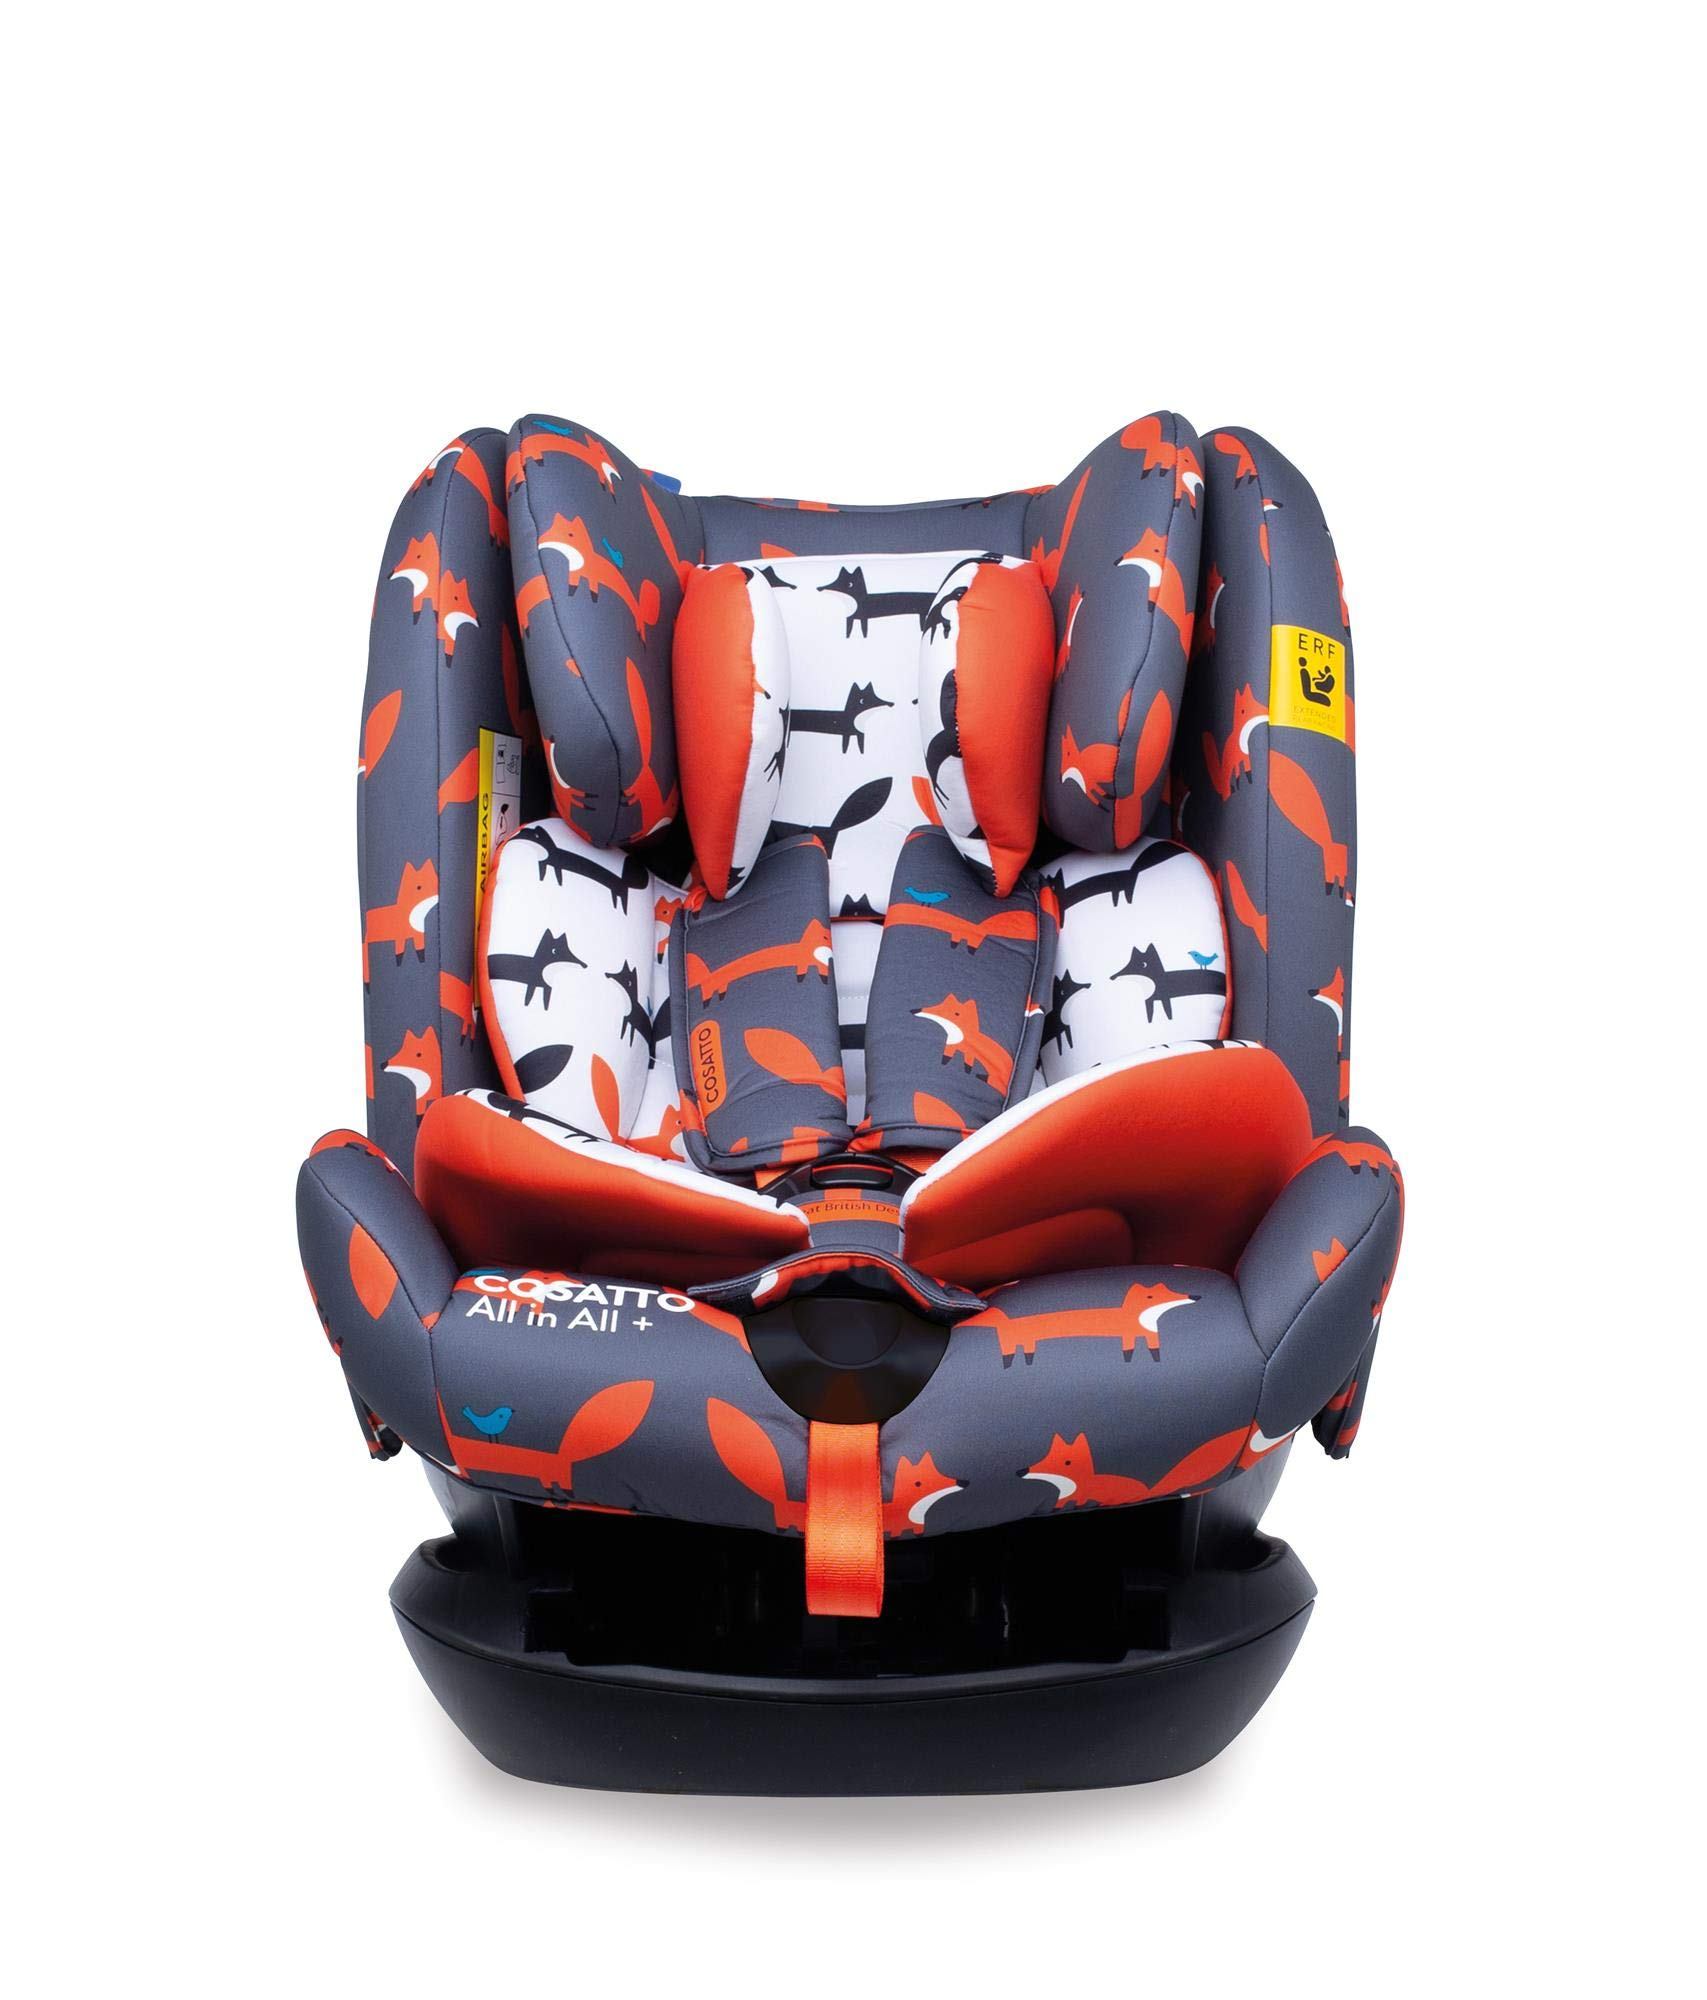 Cosatto CT4241 All in All + Group 0+123 Car Seat Mister Fox 8.9 kg Cosatto Extended rear facing Suitable for all stages Extra security 1